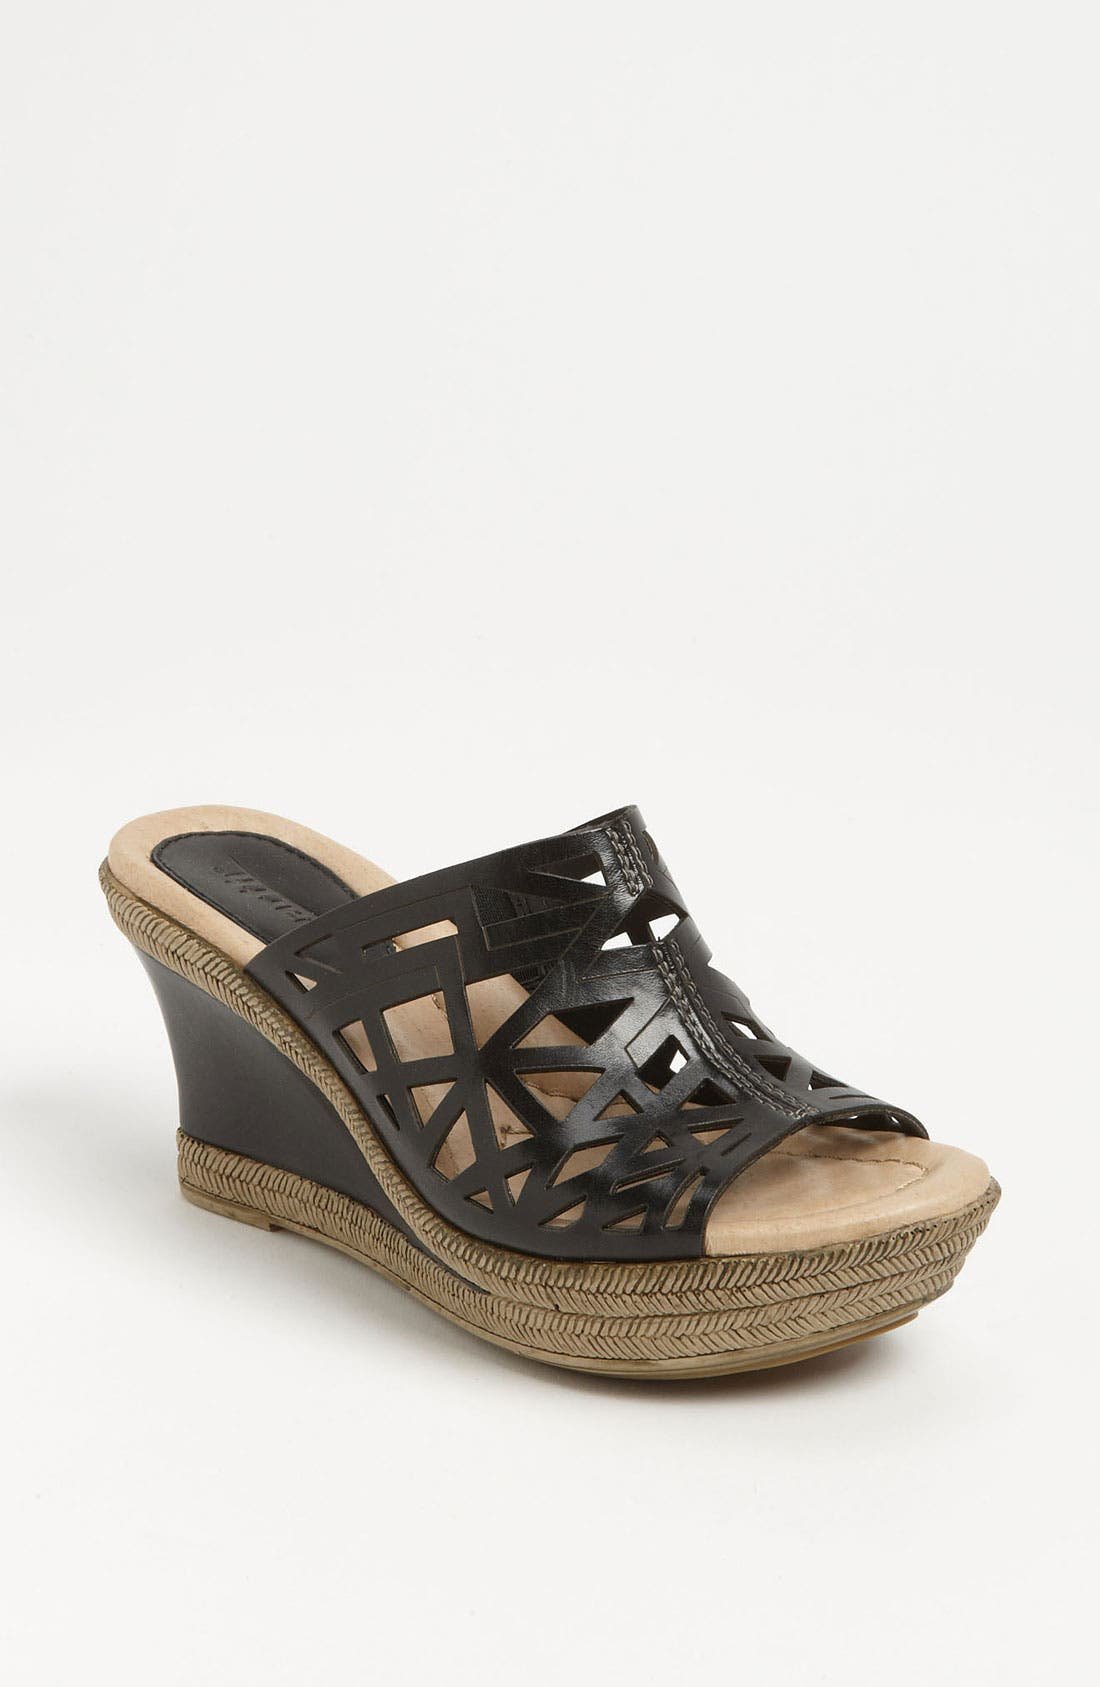 Main Image - Earth® 'Sugarpine' Sandal